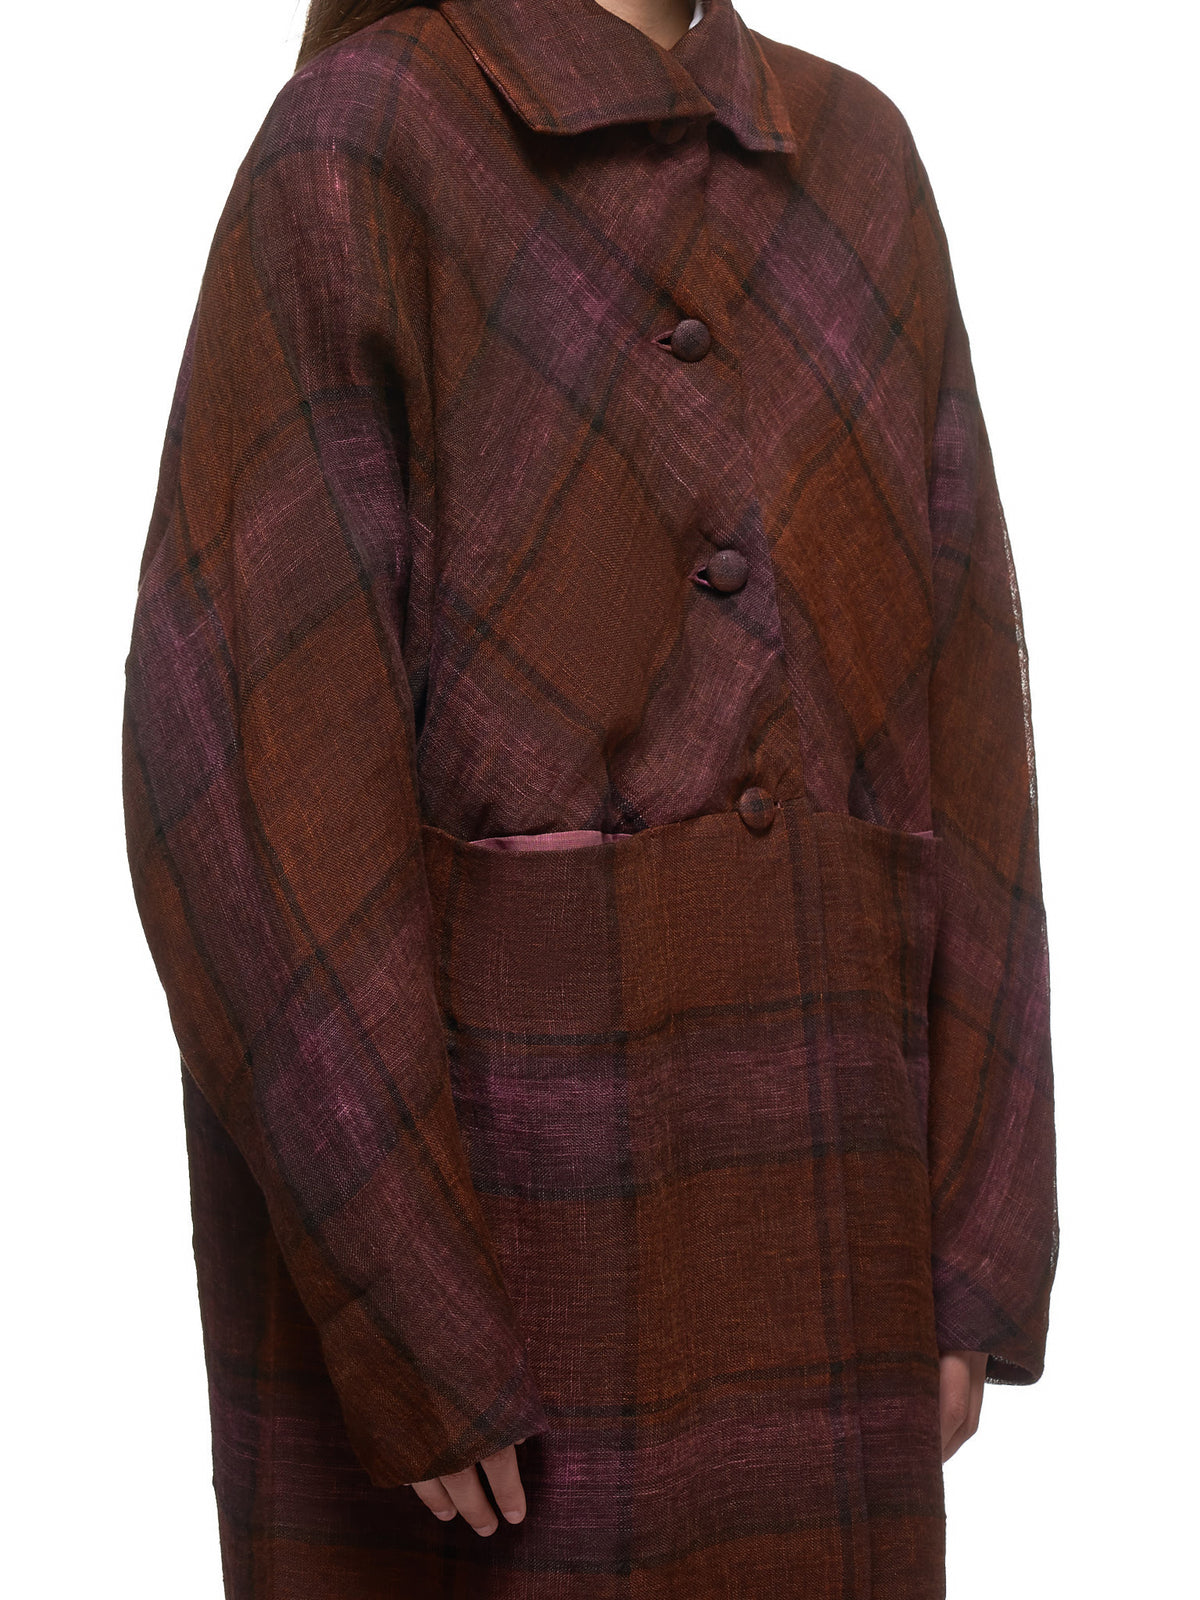 Window Pane Plaid Coat (CW421-LLCK-RUST-BROWN)